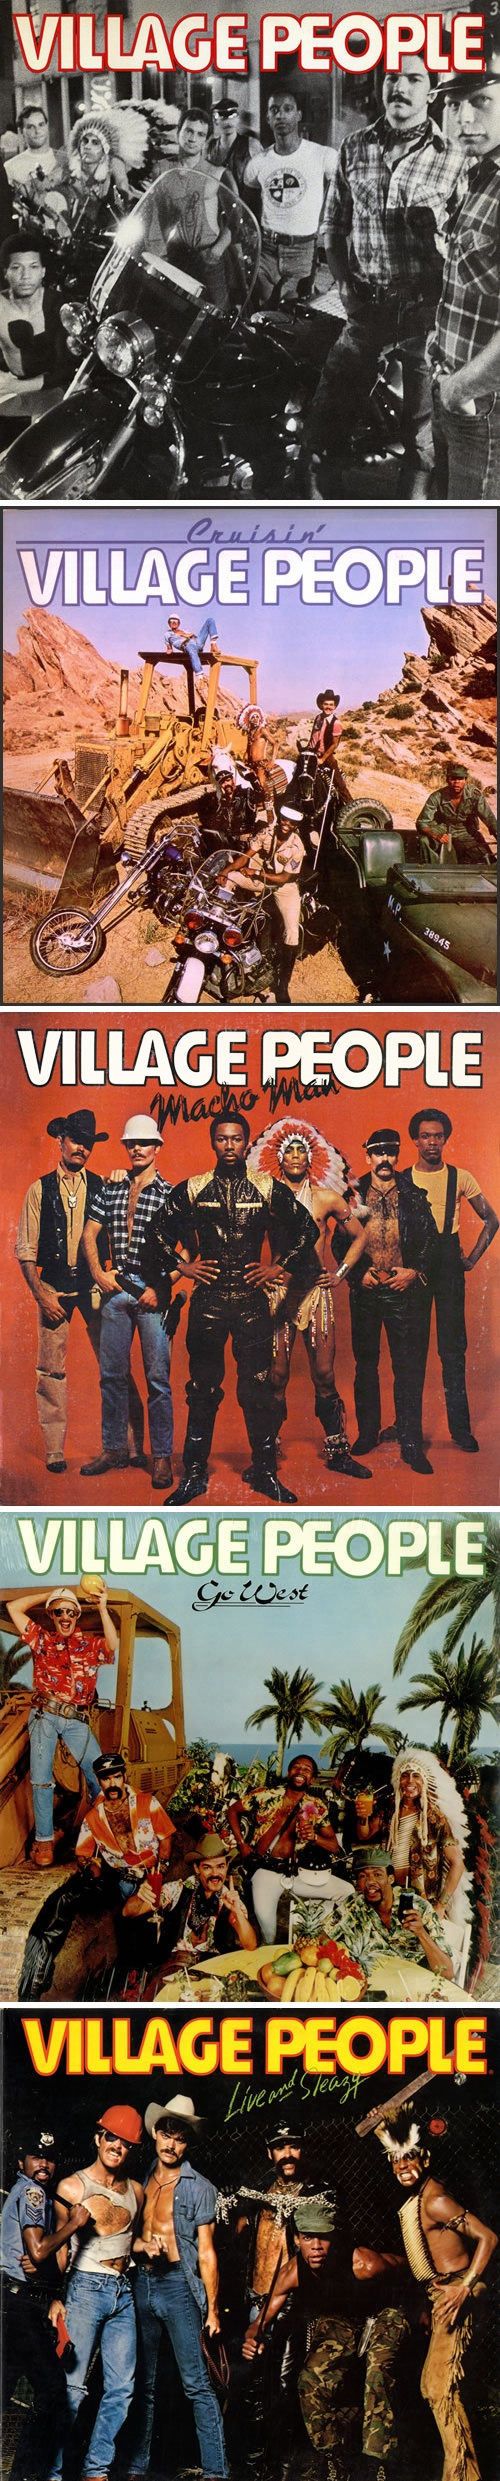 14 Best Images About Village People On Pinterest